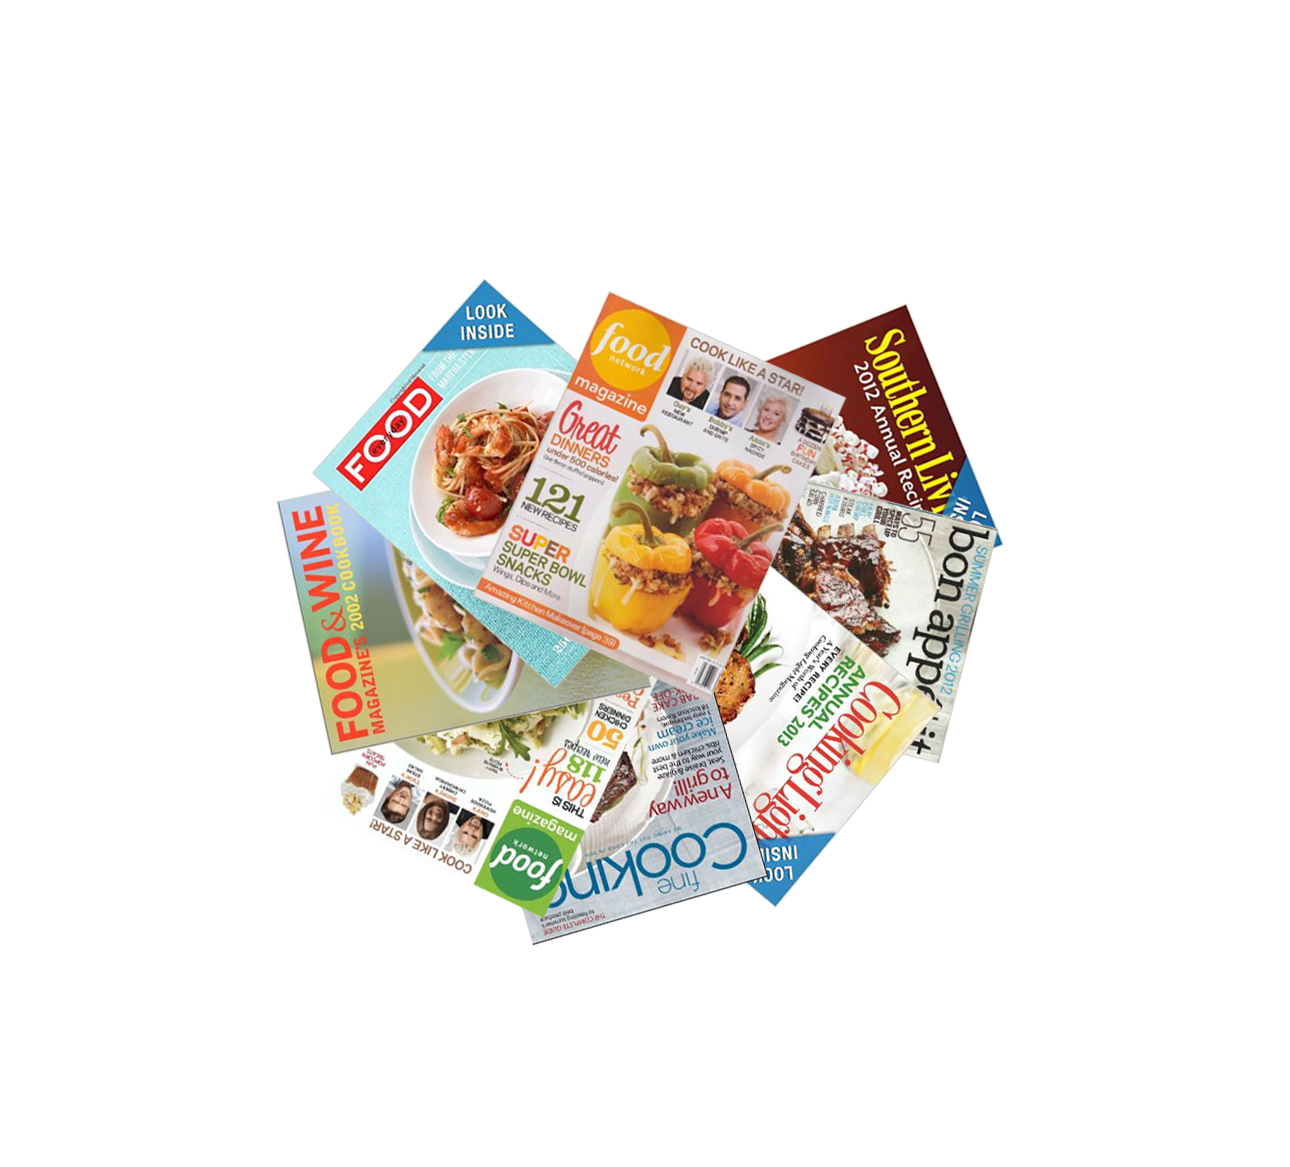 #PepperParty #Prize #FoodMagazine #Win